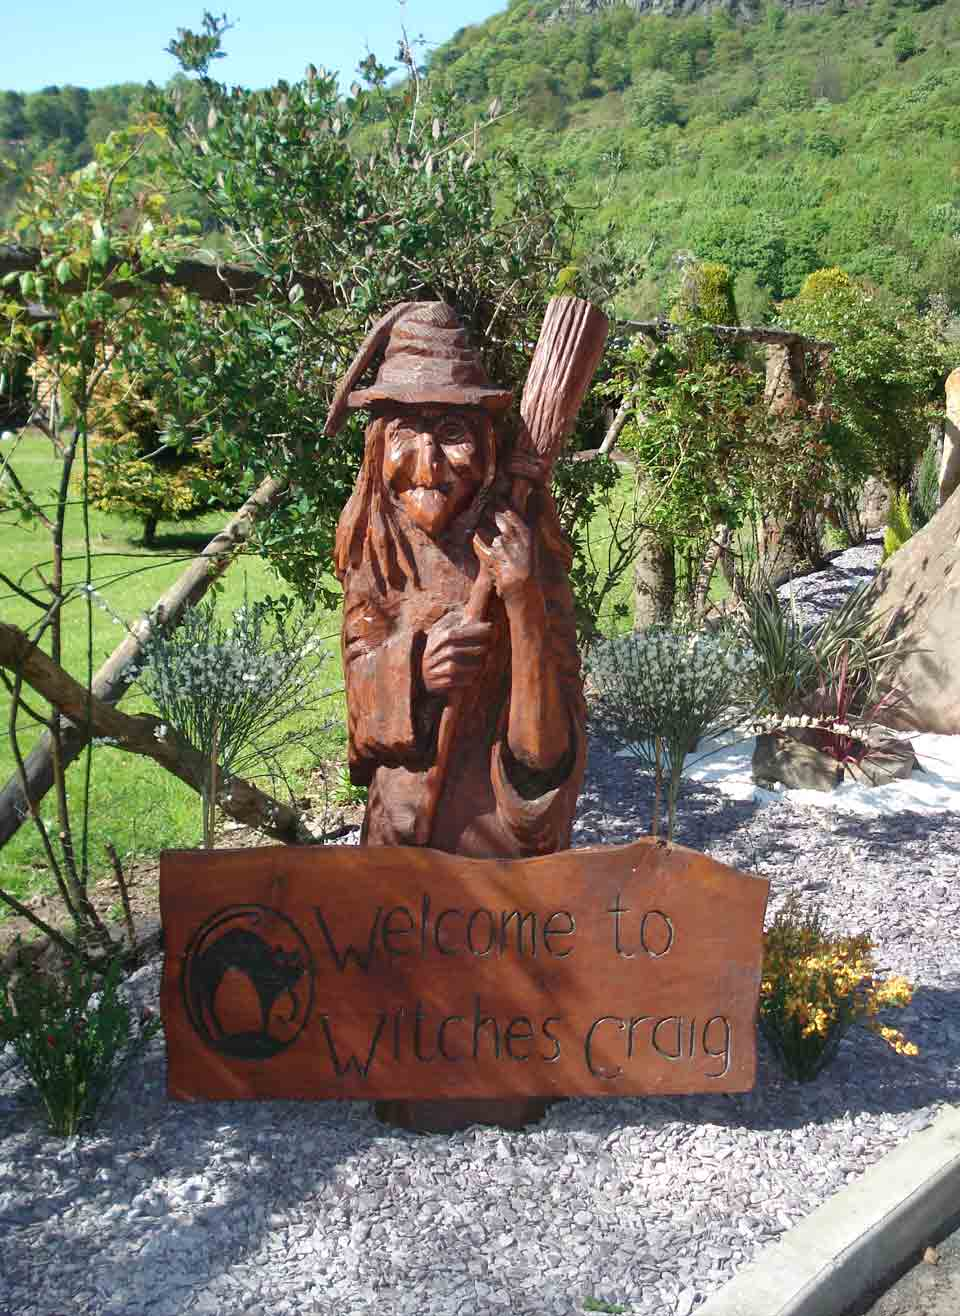 Witchescraig Witch